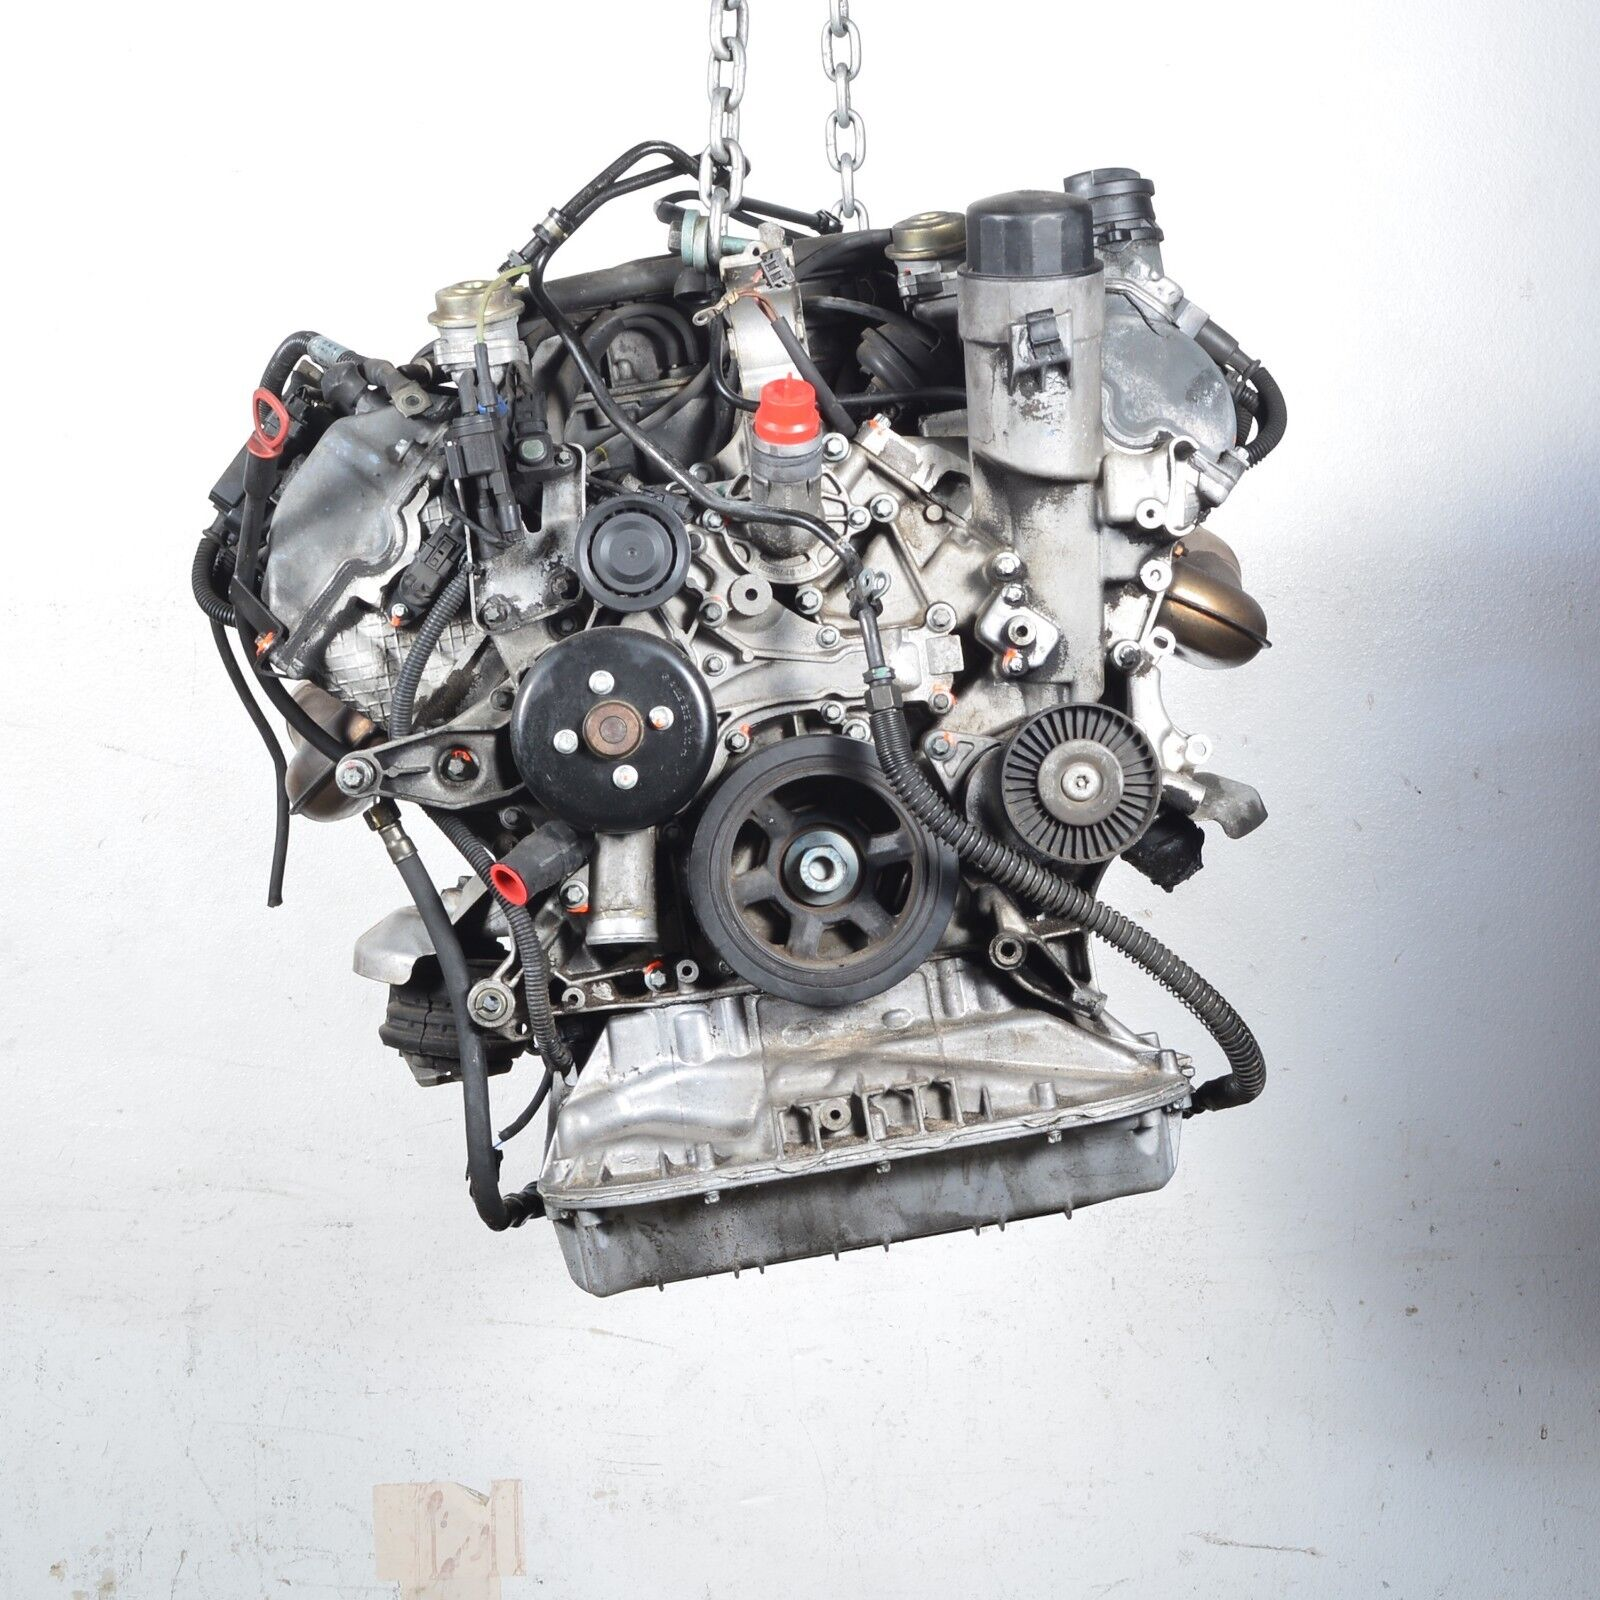 Used Chrysler Crossfire Engines And Components For Sale Wiring Harness 2004 2006 32l Engine Motor Tested Oem